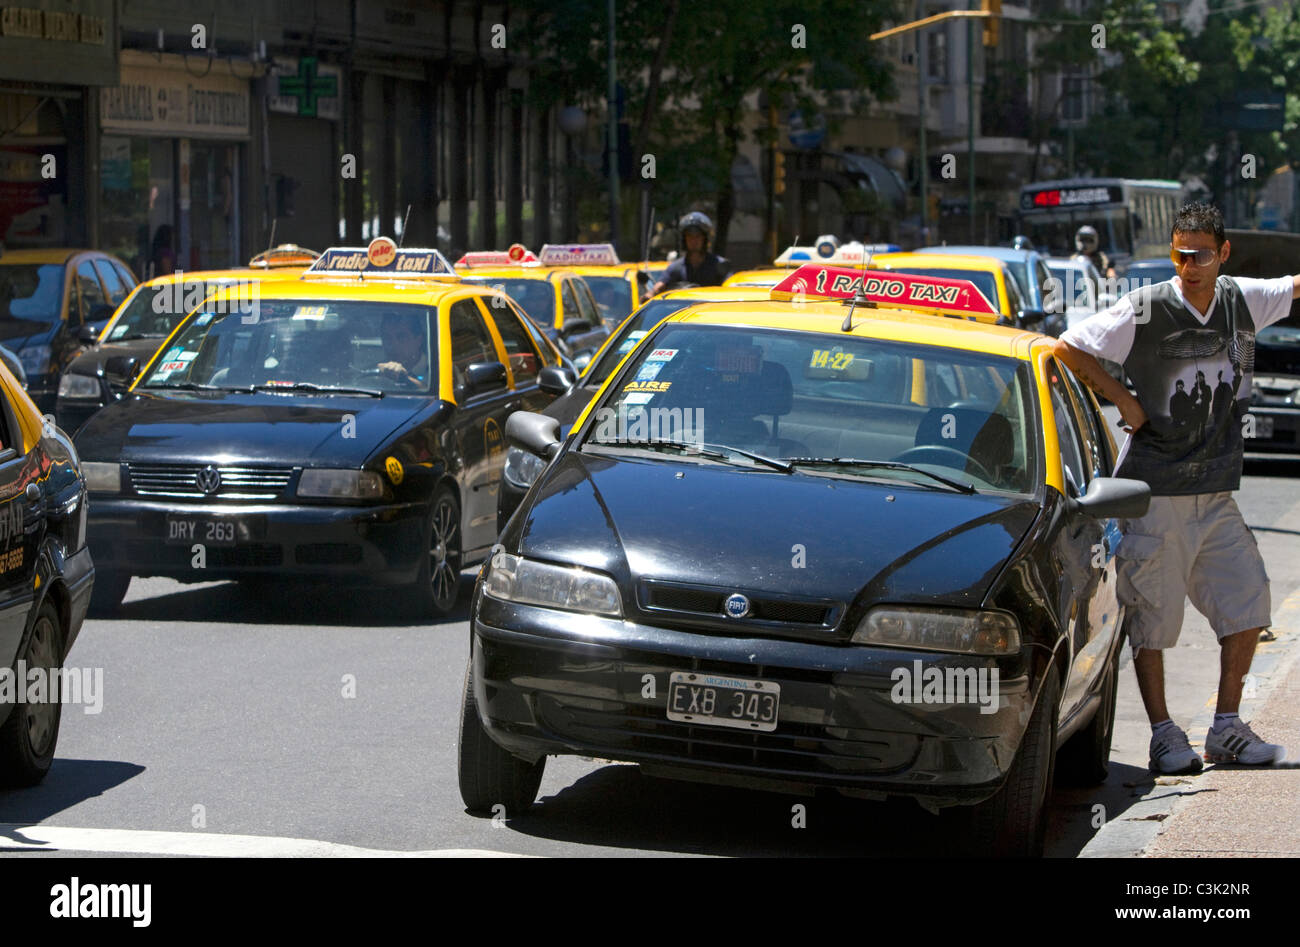 Taxi's on Cordoba Avenue in the Retiro barrio of Buenos Aires, Argentina. - Stock Image